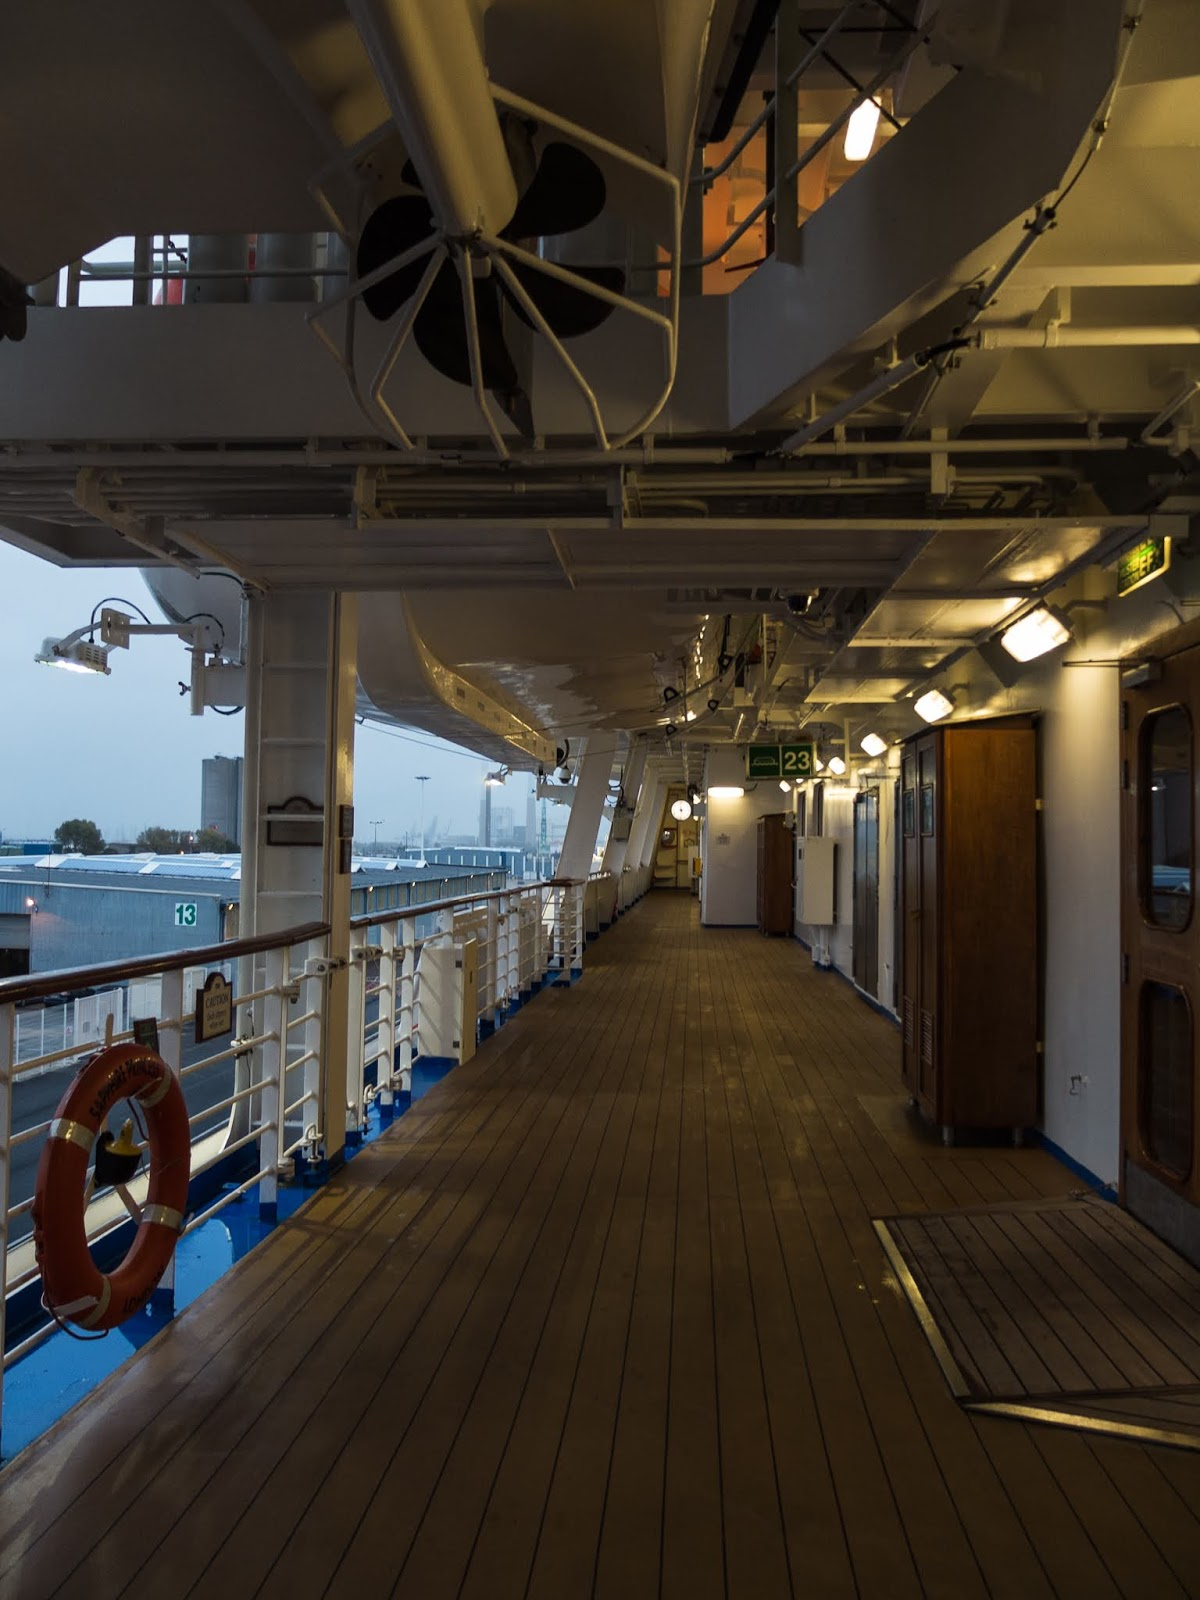 Deck on the Sapphire Princess cruise ship during an early autumn morning.